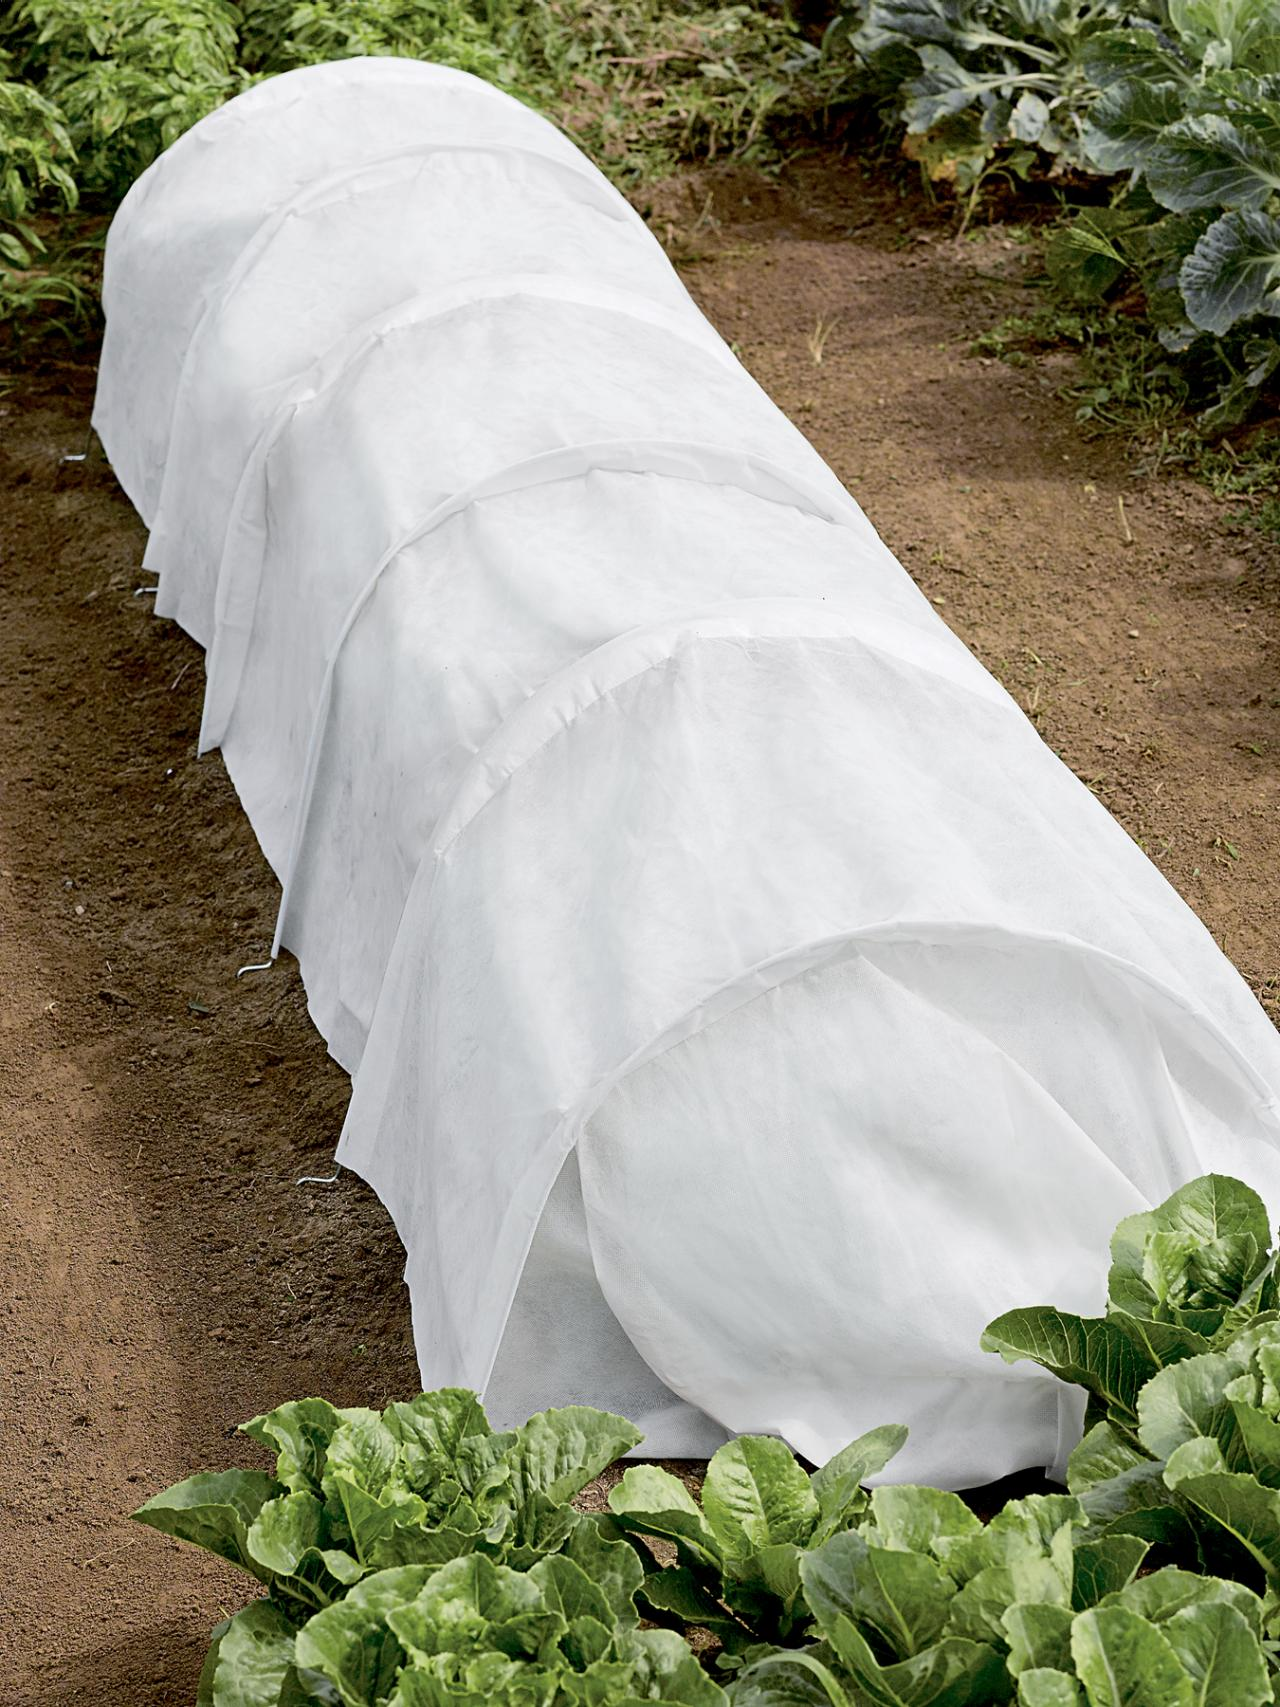 Protect Plants With Row Covers | HGTV